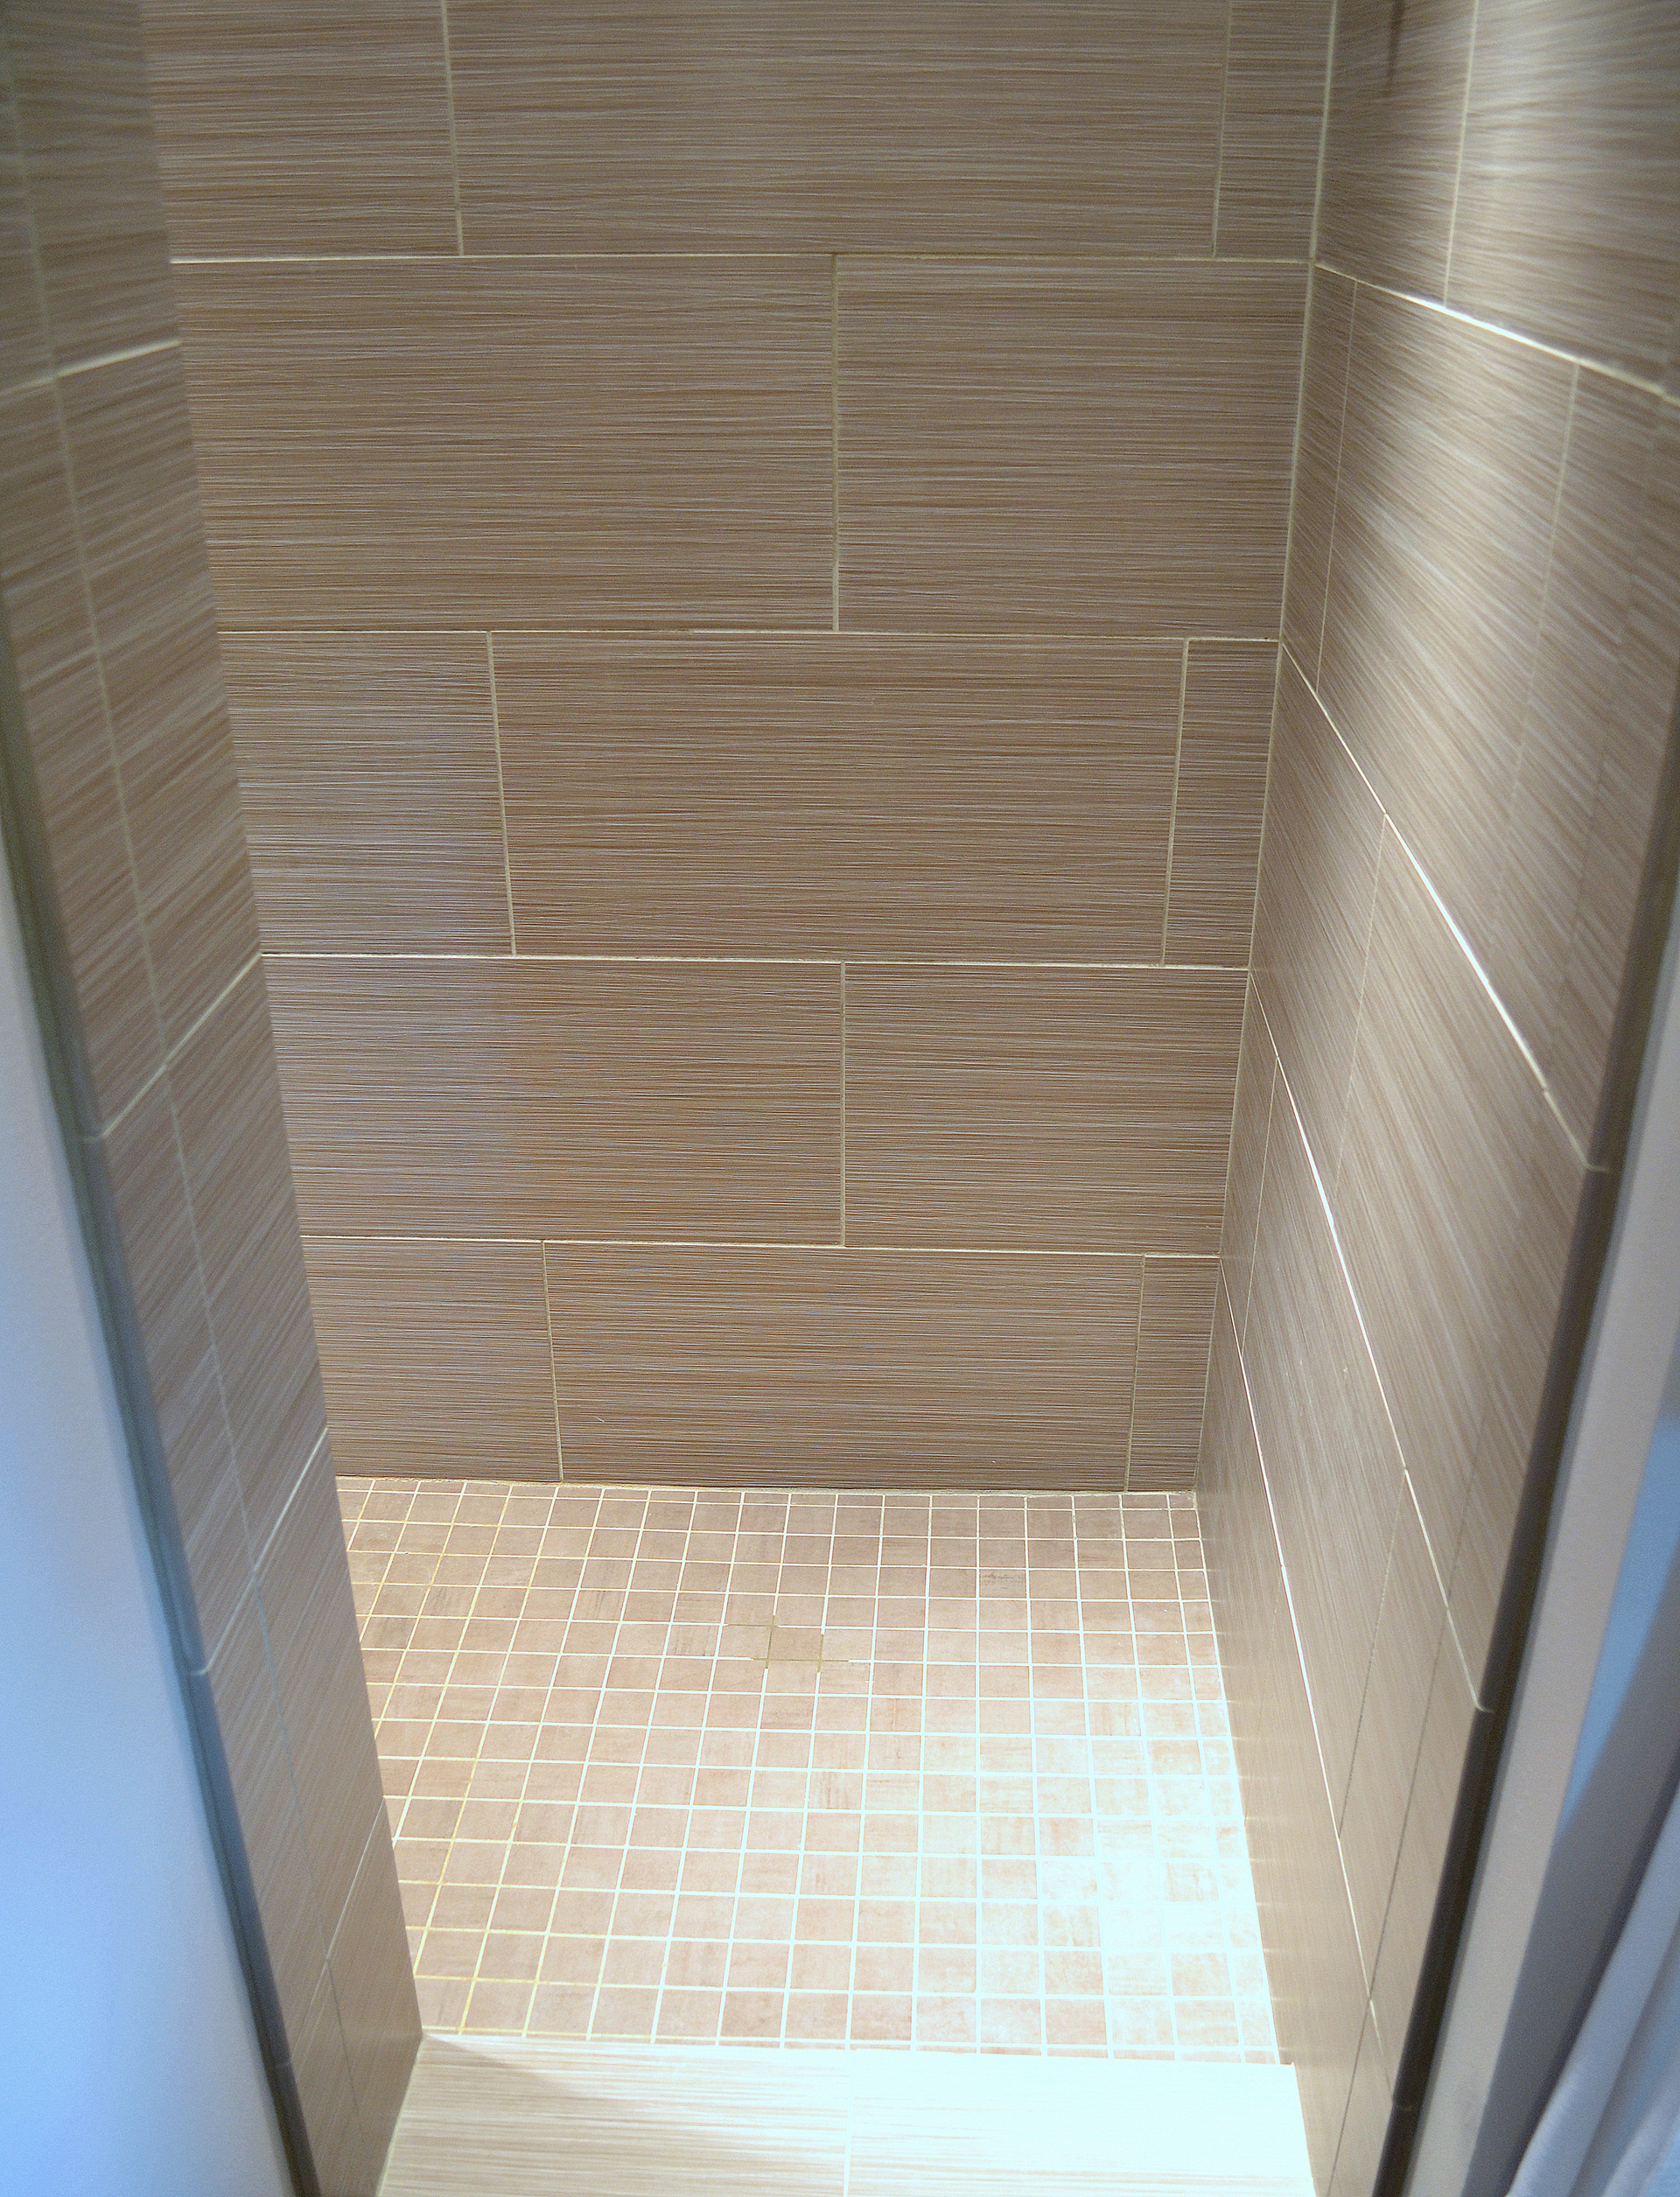 3 Things to Know Before Installing Tiled Showers - Builders ...